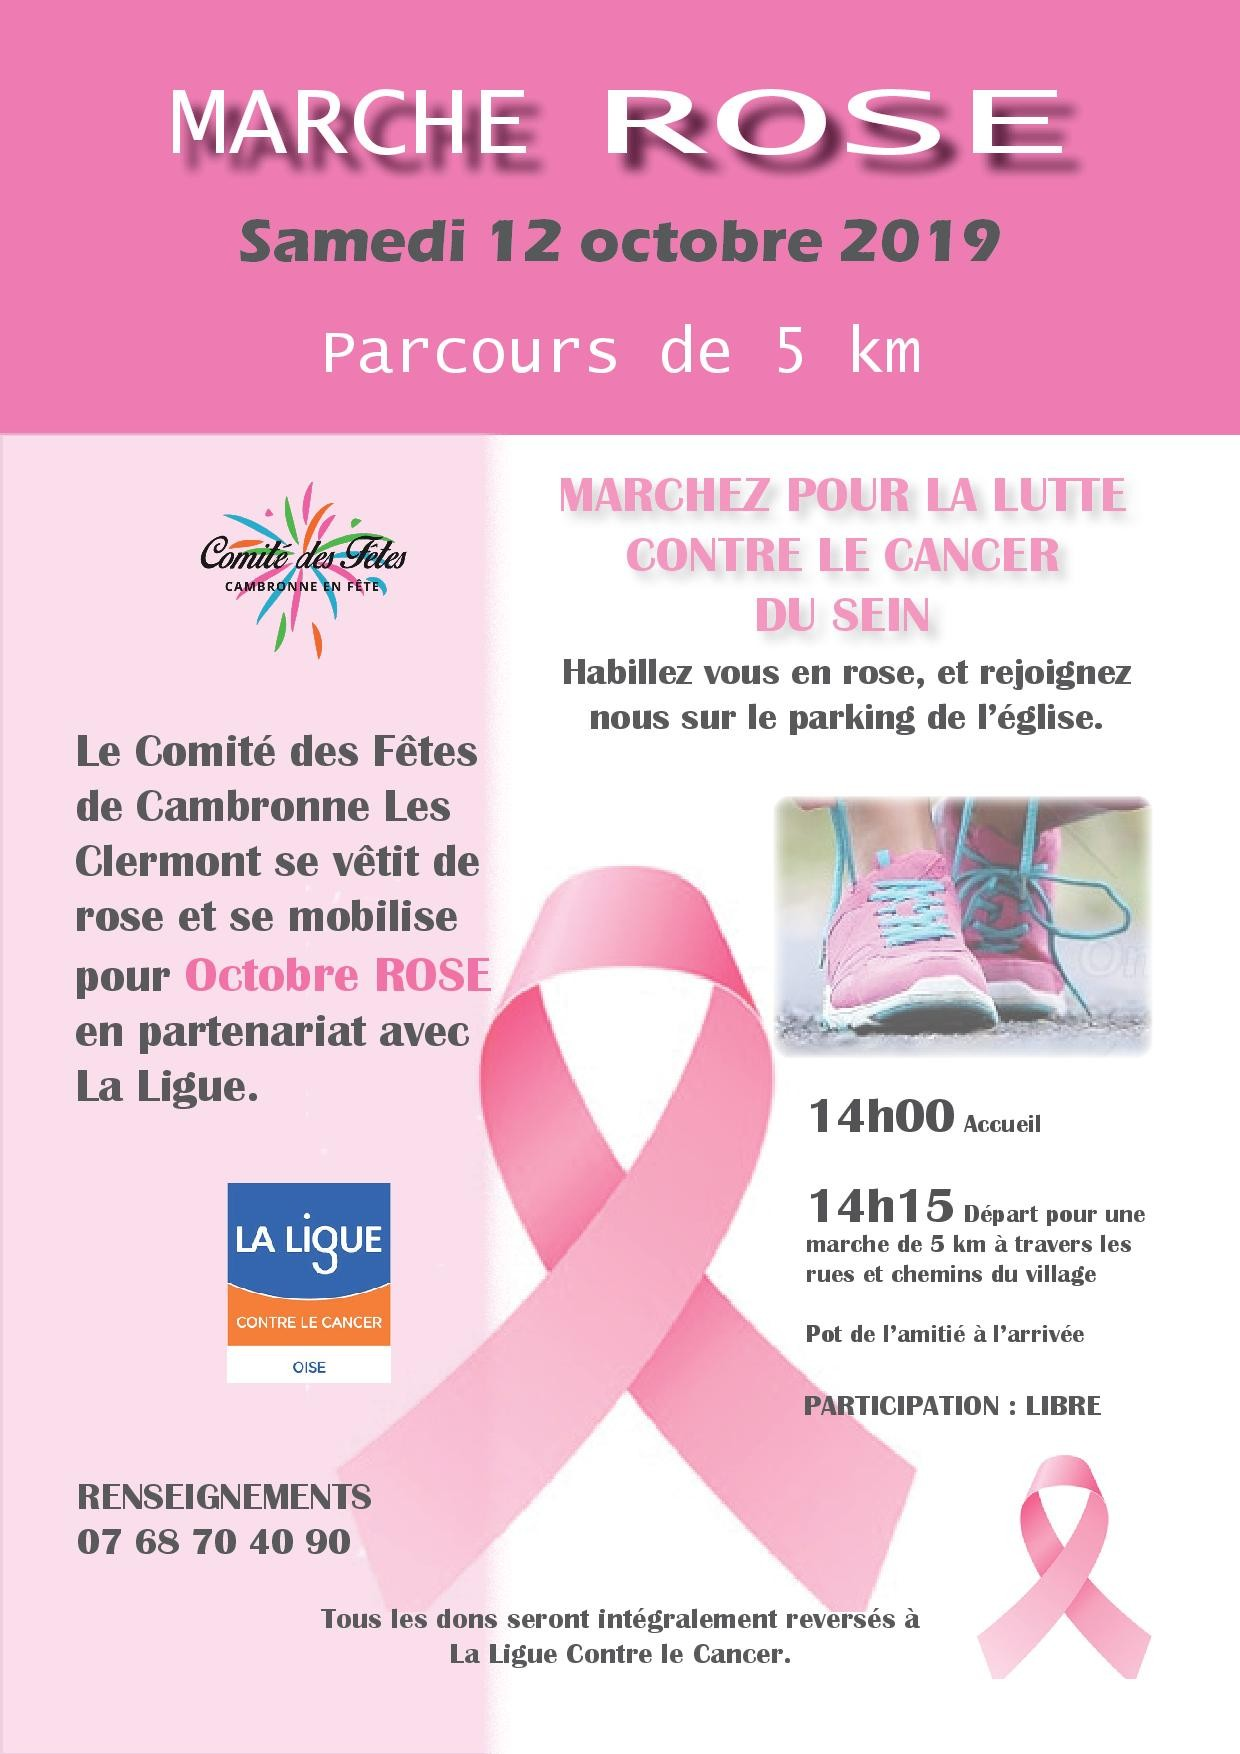 Octobre rose 2019 affiche libre participation